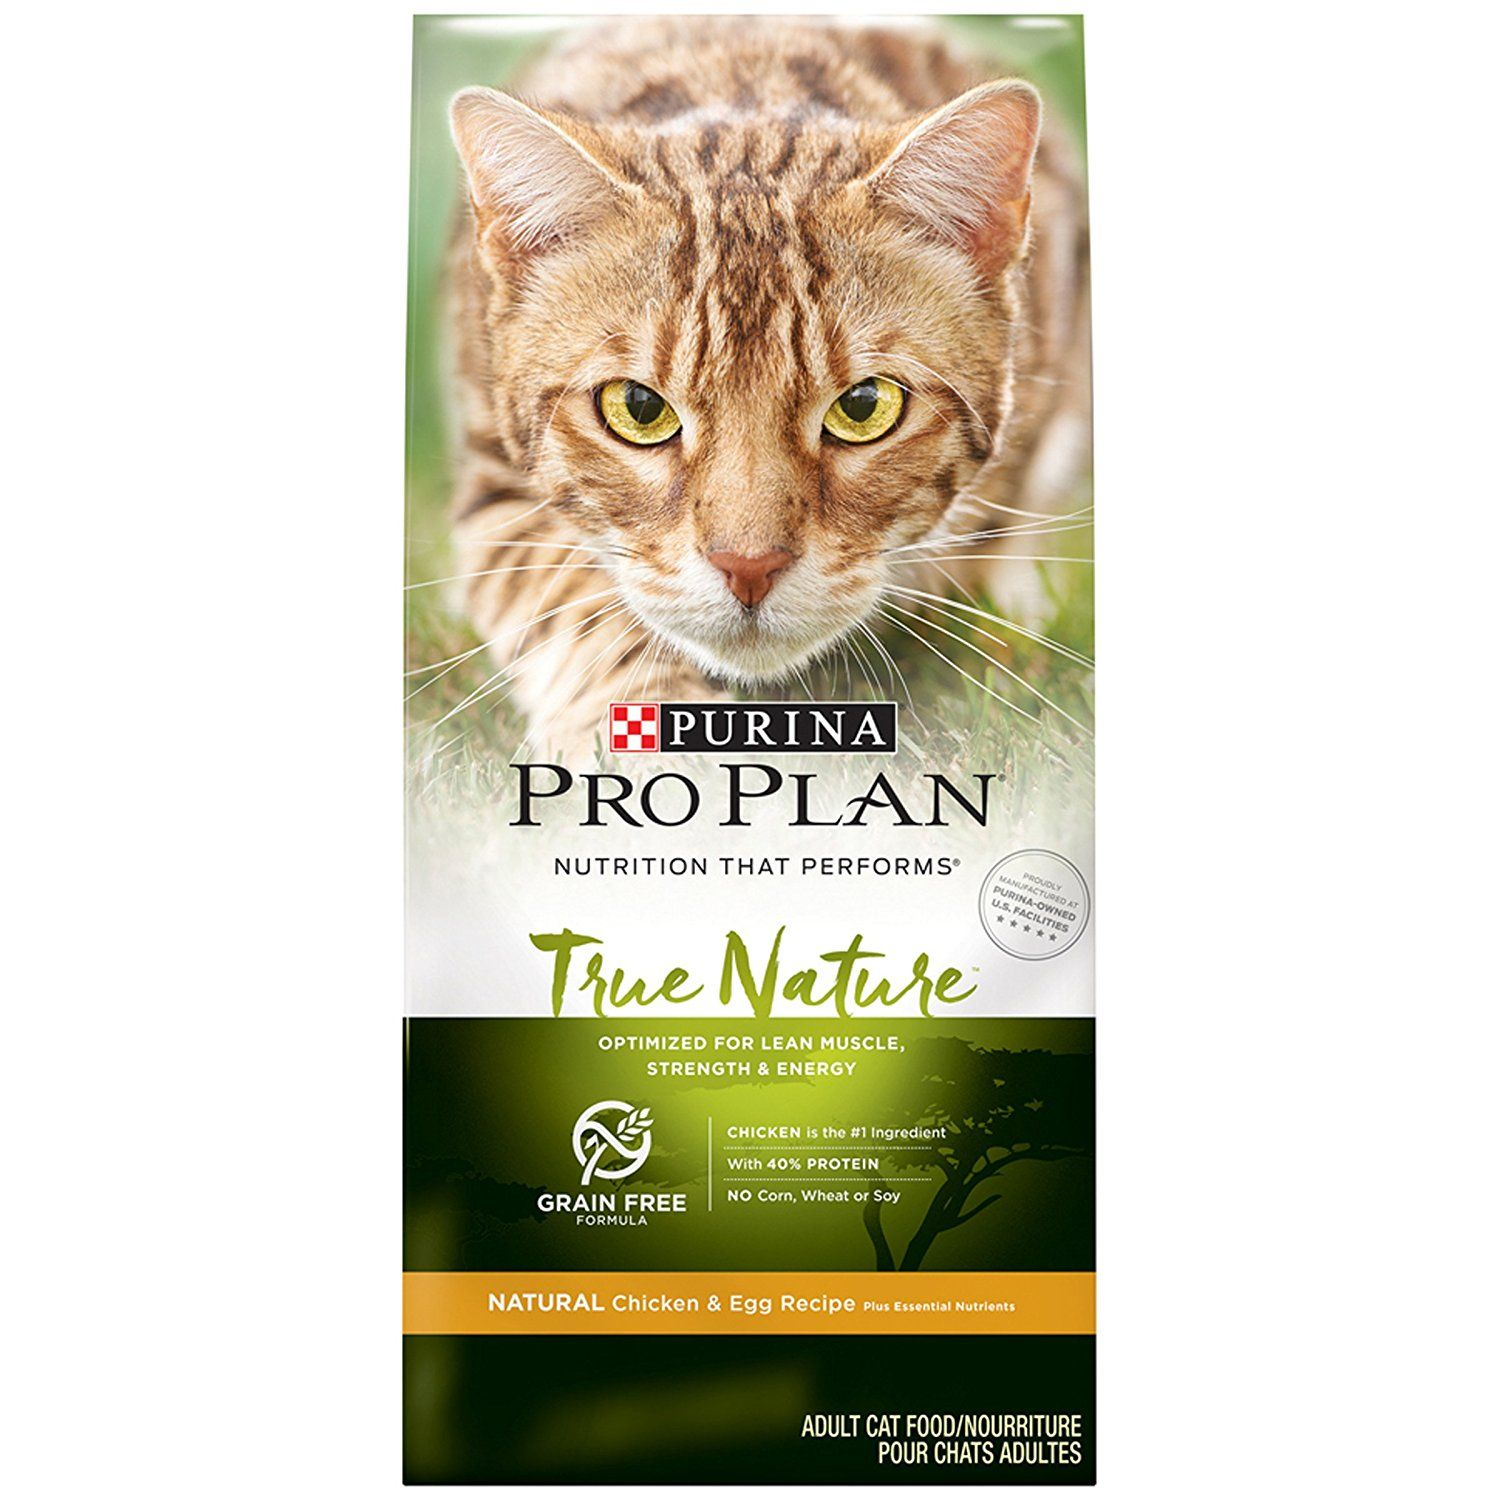 Purina Pro Plan True Nature Natural Grain Free Formulas Dry Cat Food Tried It Love It Click The Image Cat Purina Pro Plan Dry Cat Food Natural Chicken